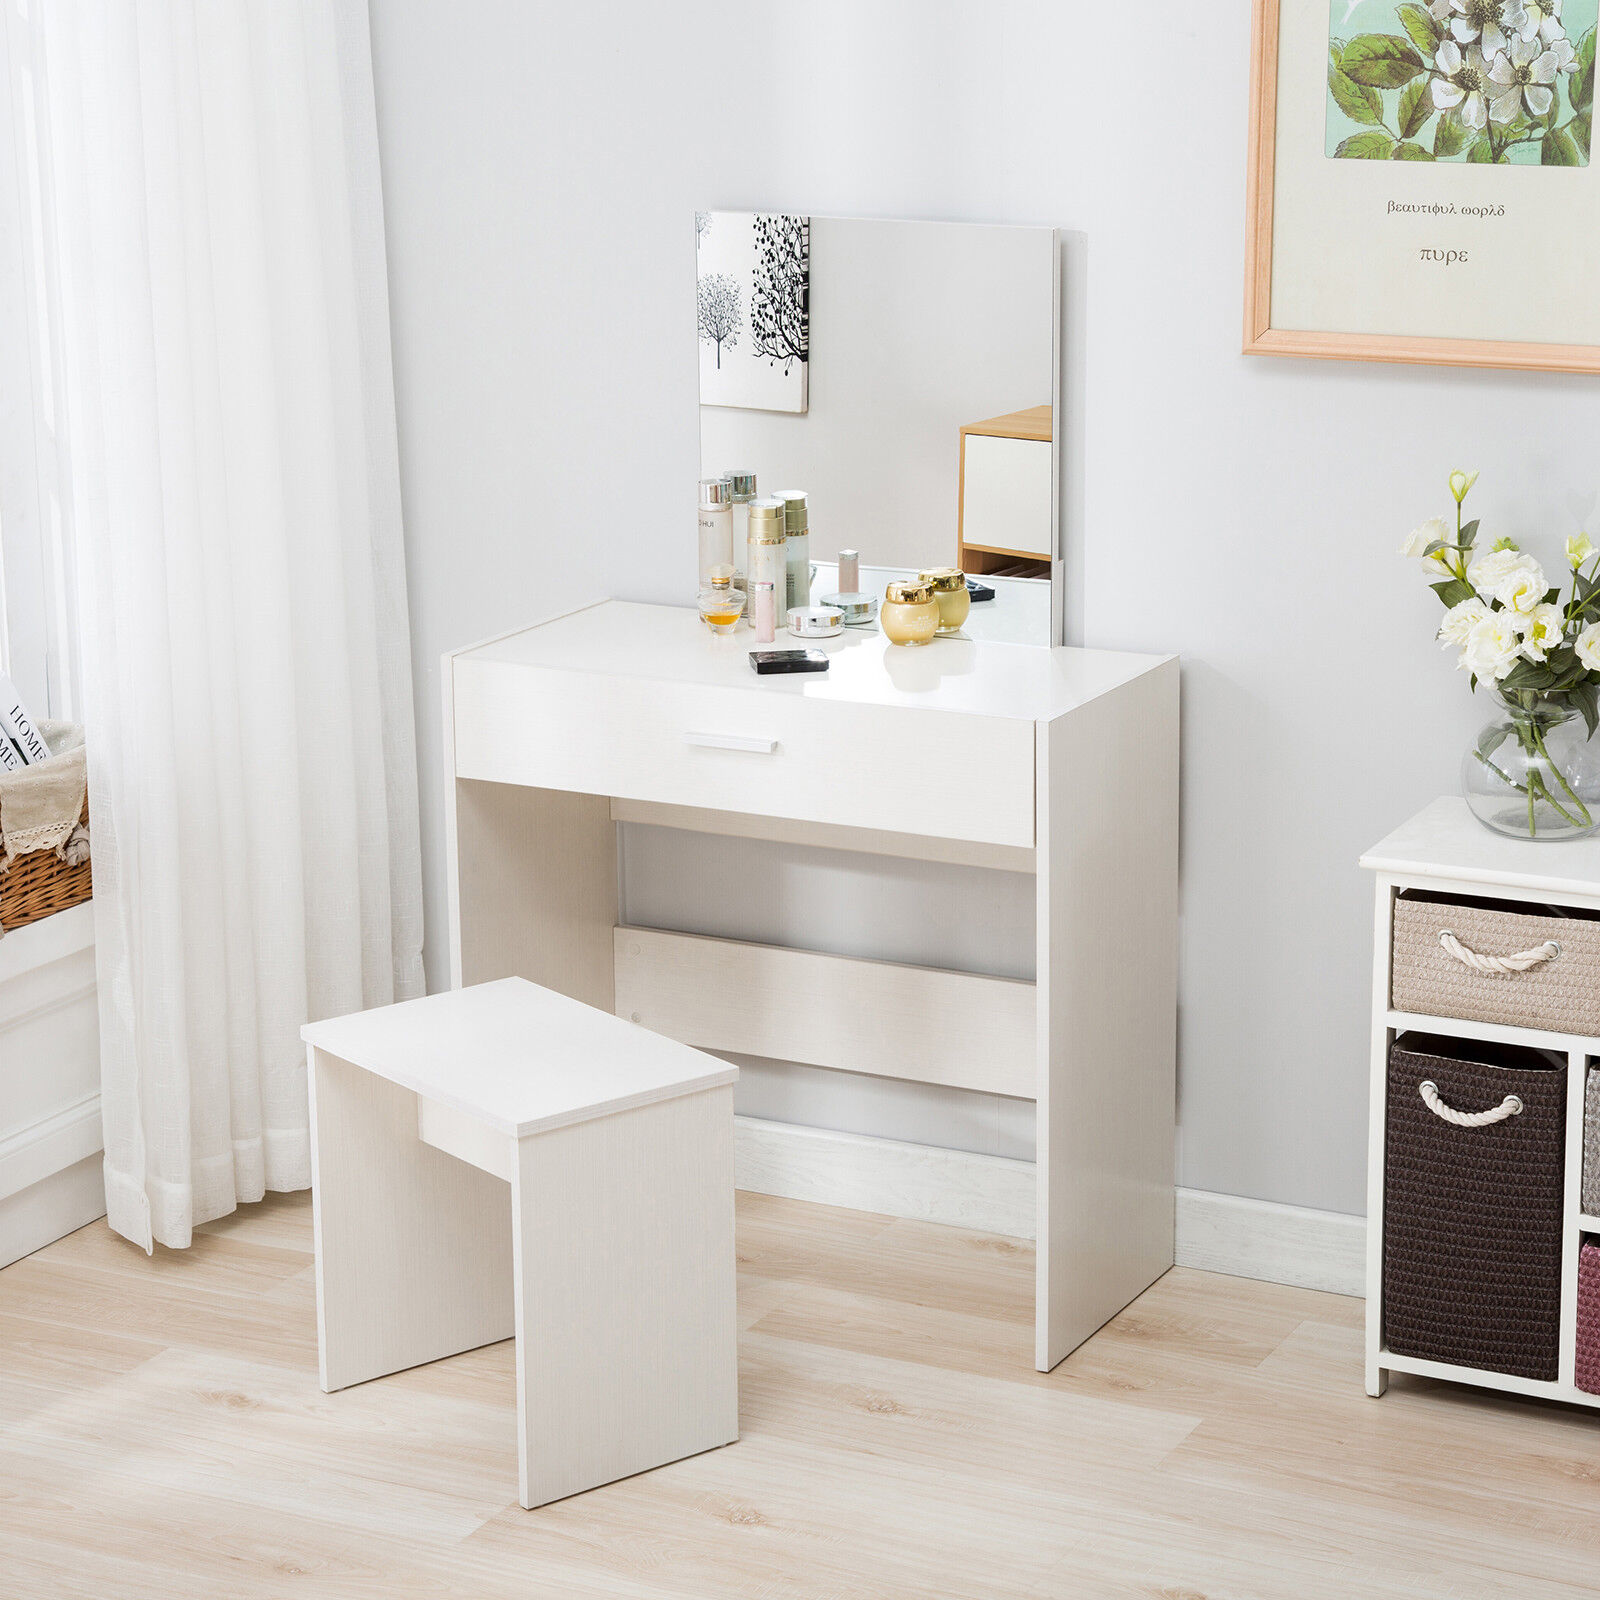 wholesale dealer 7ec1b 430e4 Details about Vanity Dressing Table & Stool Set Makeup Dresser Desk with  Mirror Drawer White